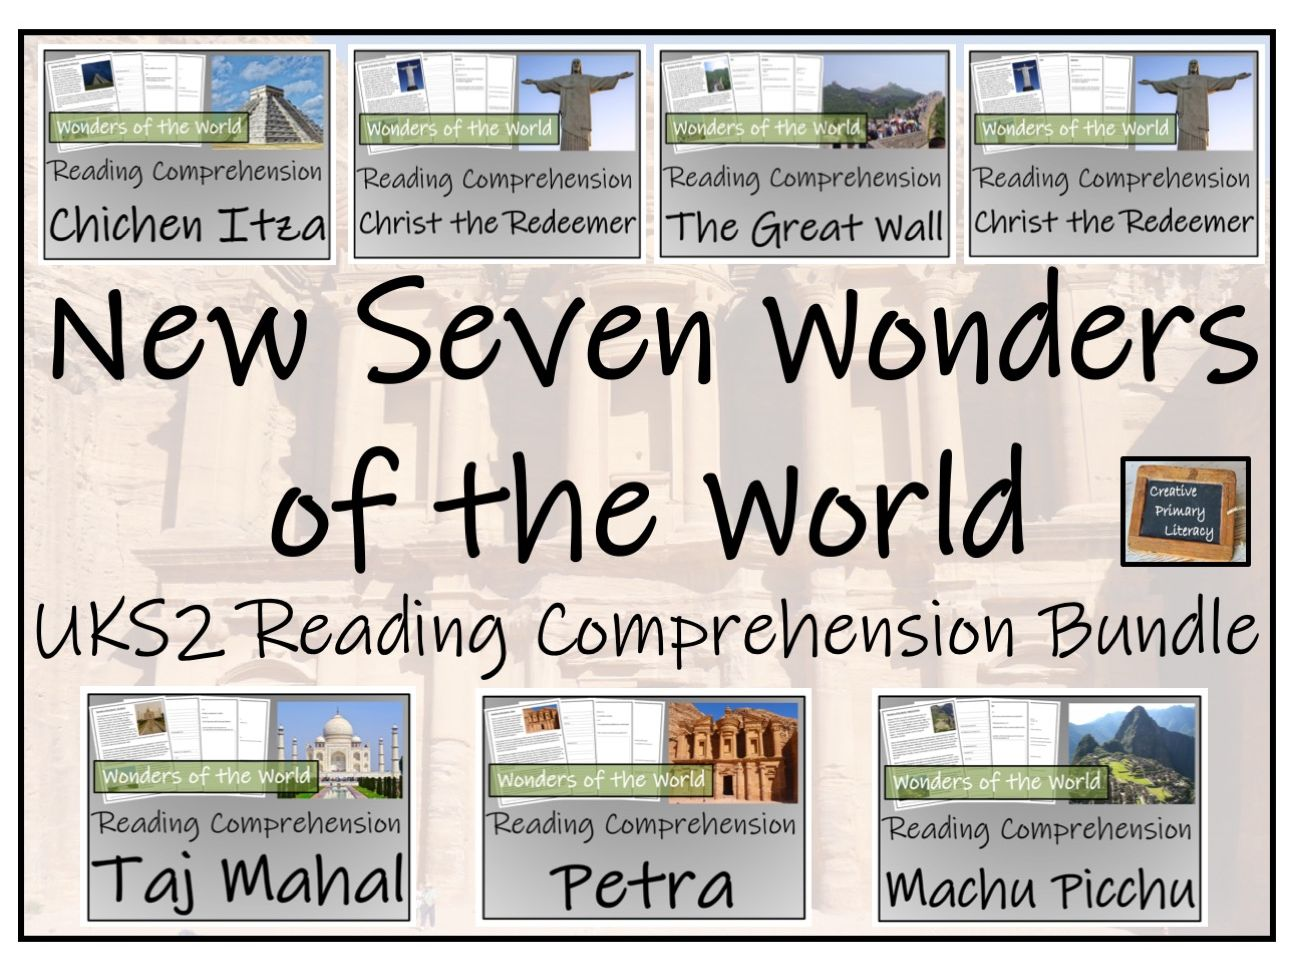 New Seven Wonders of the World - Reading Comprehension Activity Bundle